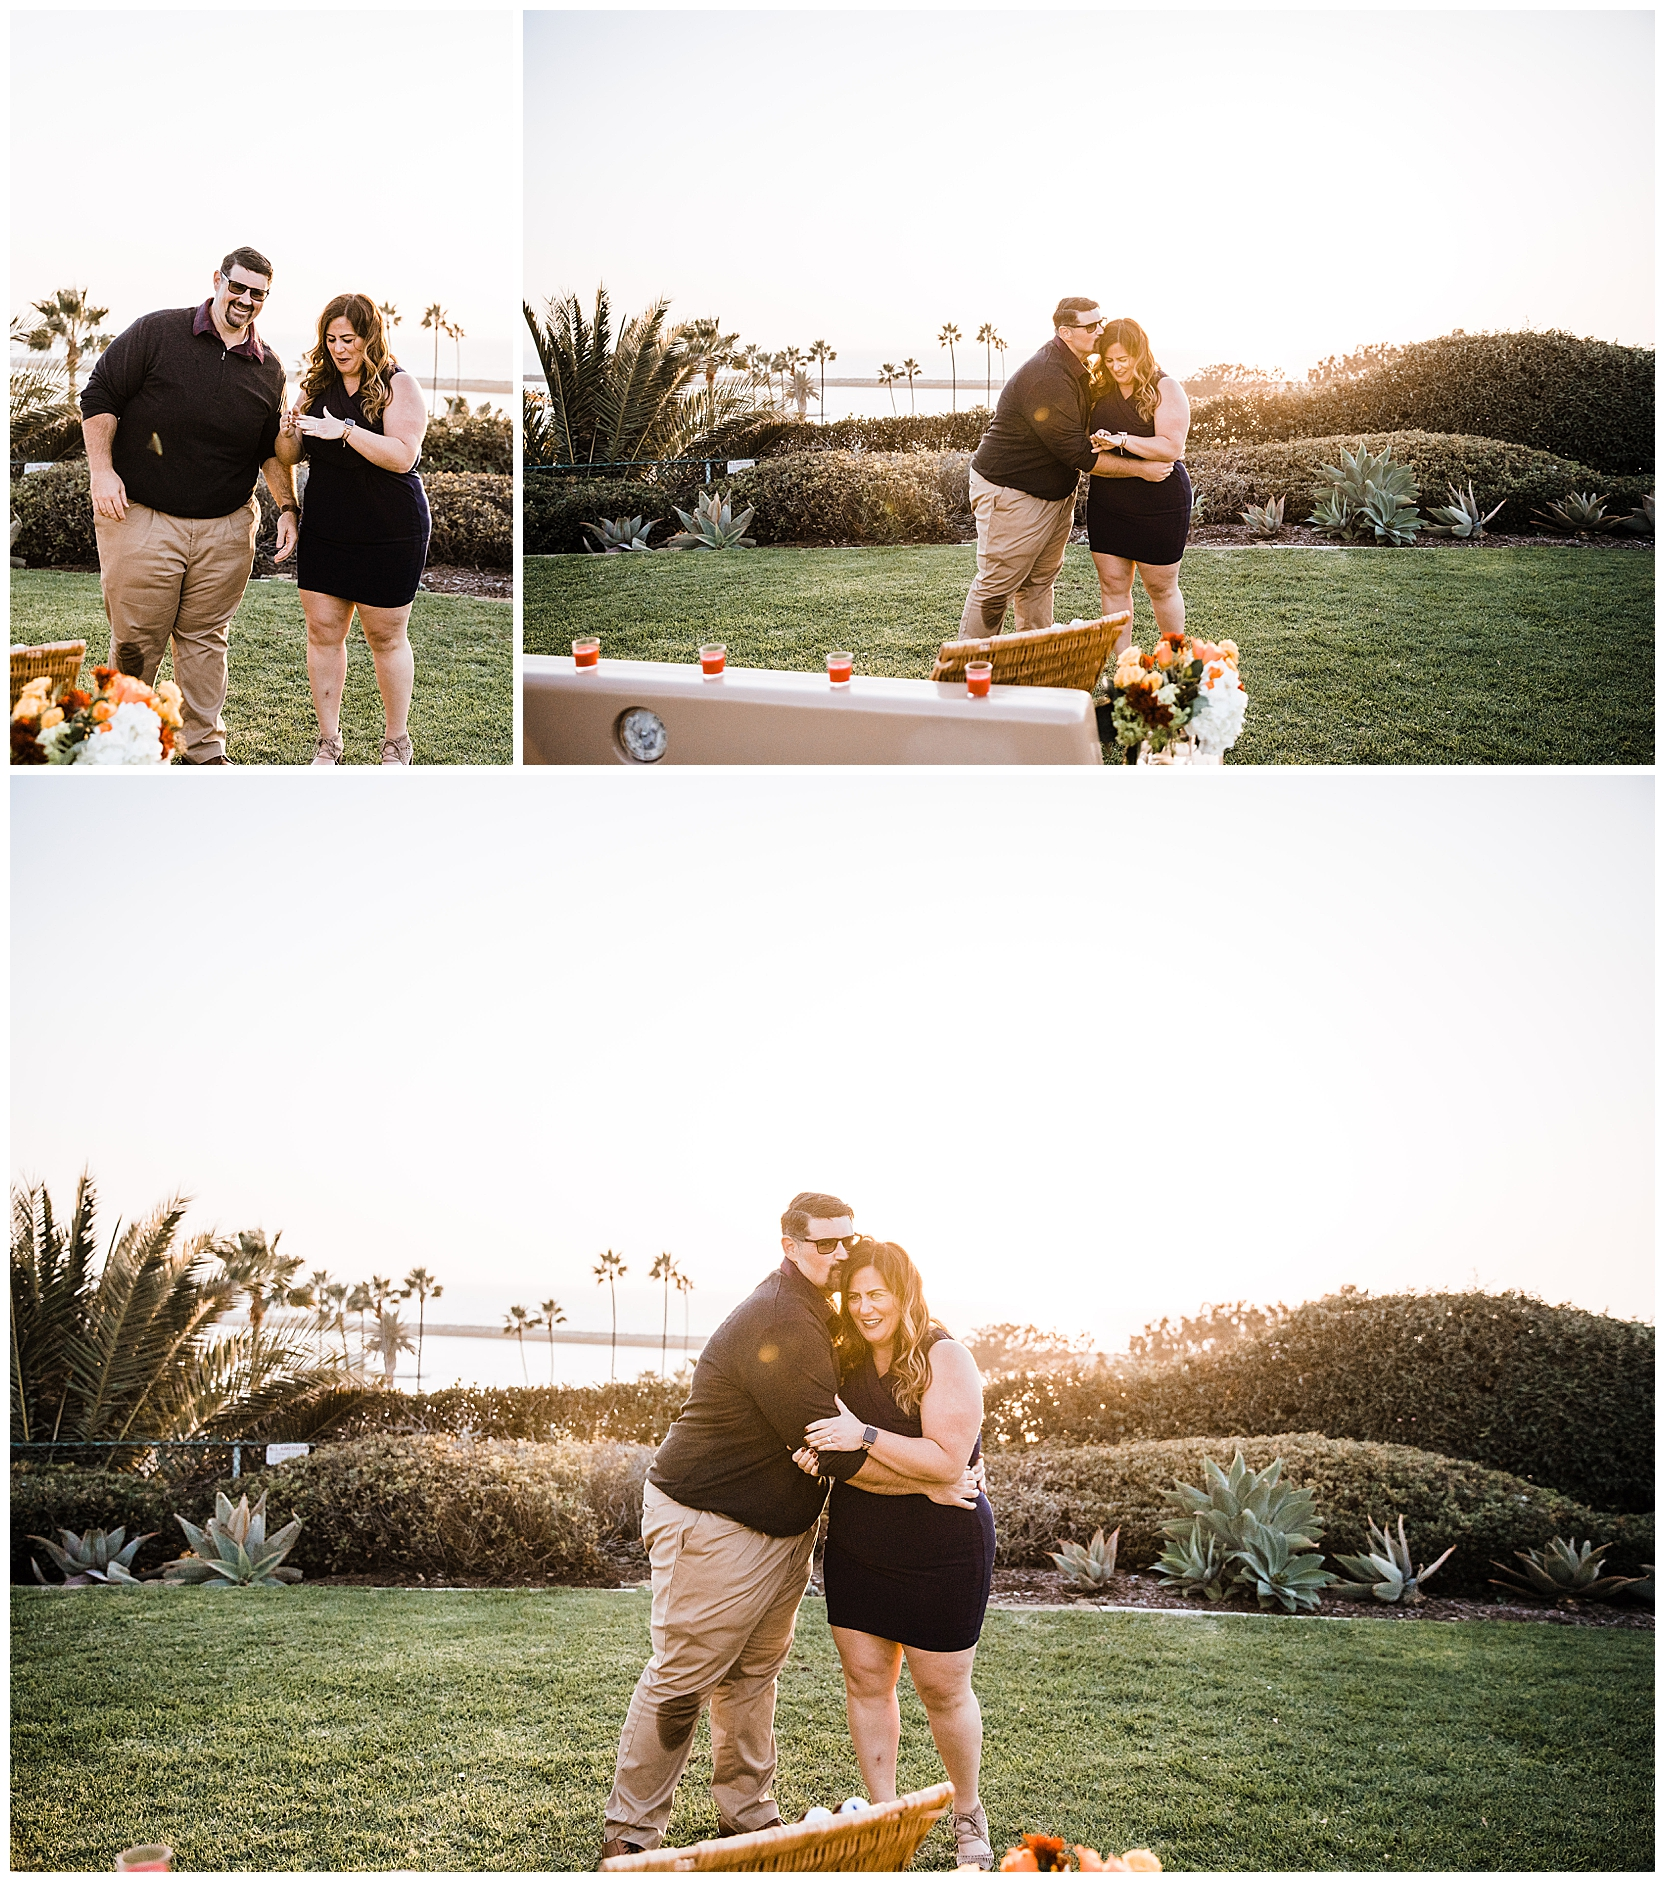 jessicafredericks_huntingtonbeach_proposal_sunset_engagement_0014.jpg